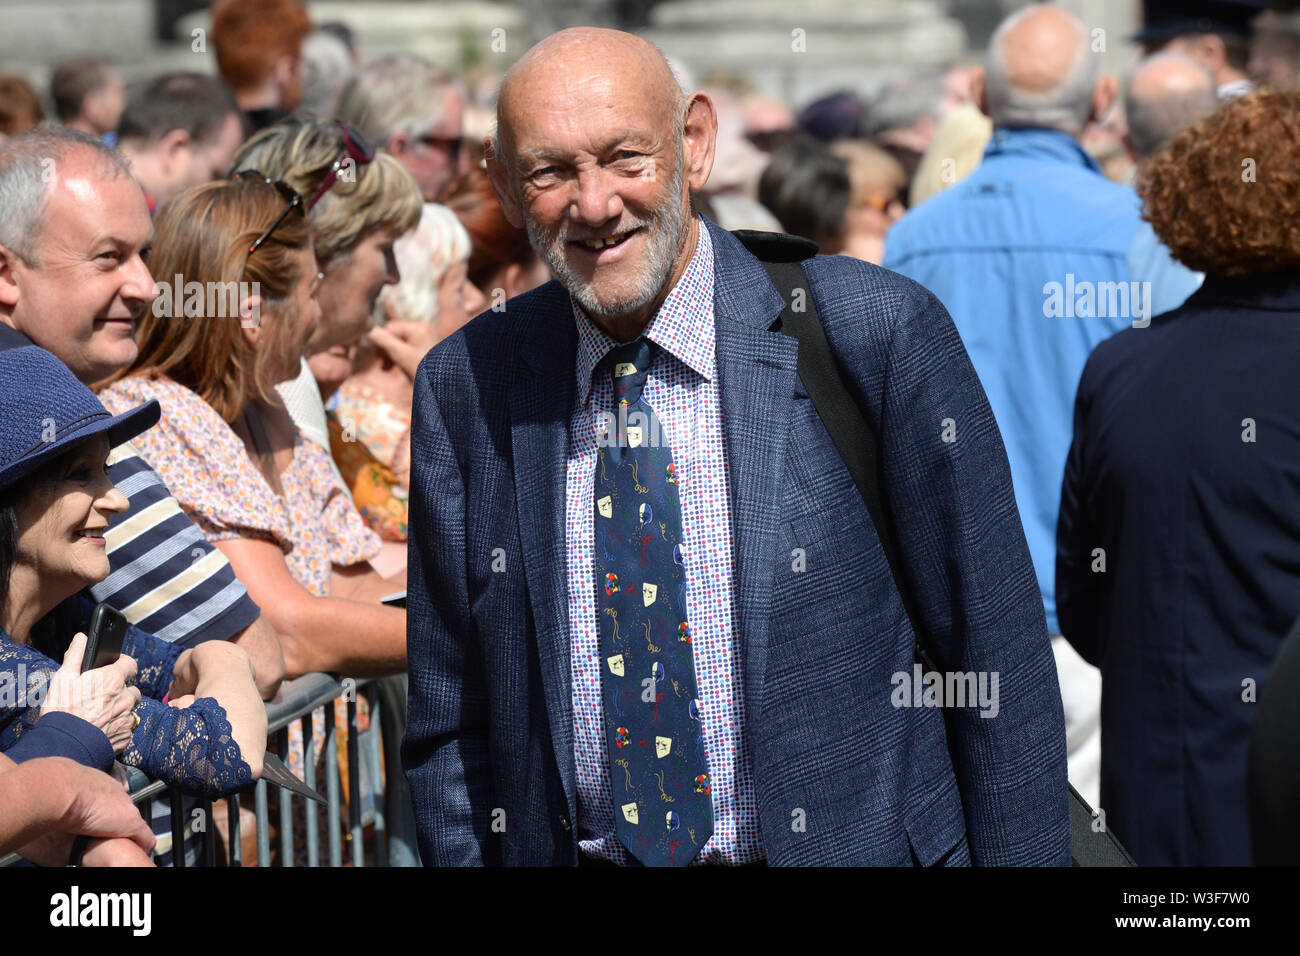 Paddy Cole arrives for the funeral of Father Ted star Brendan Grace at the Church of St. Nicholas of Myra, Dublin. - Stock Image